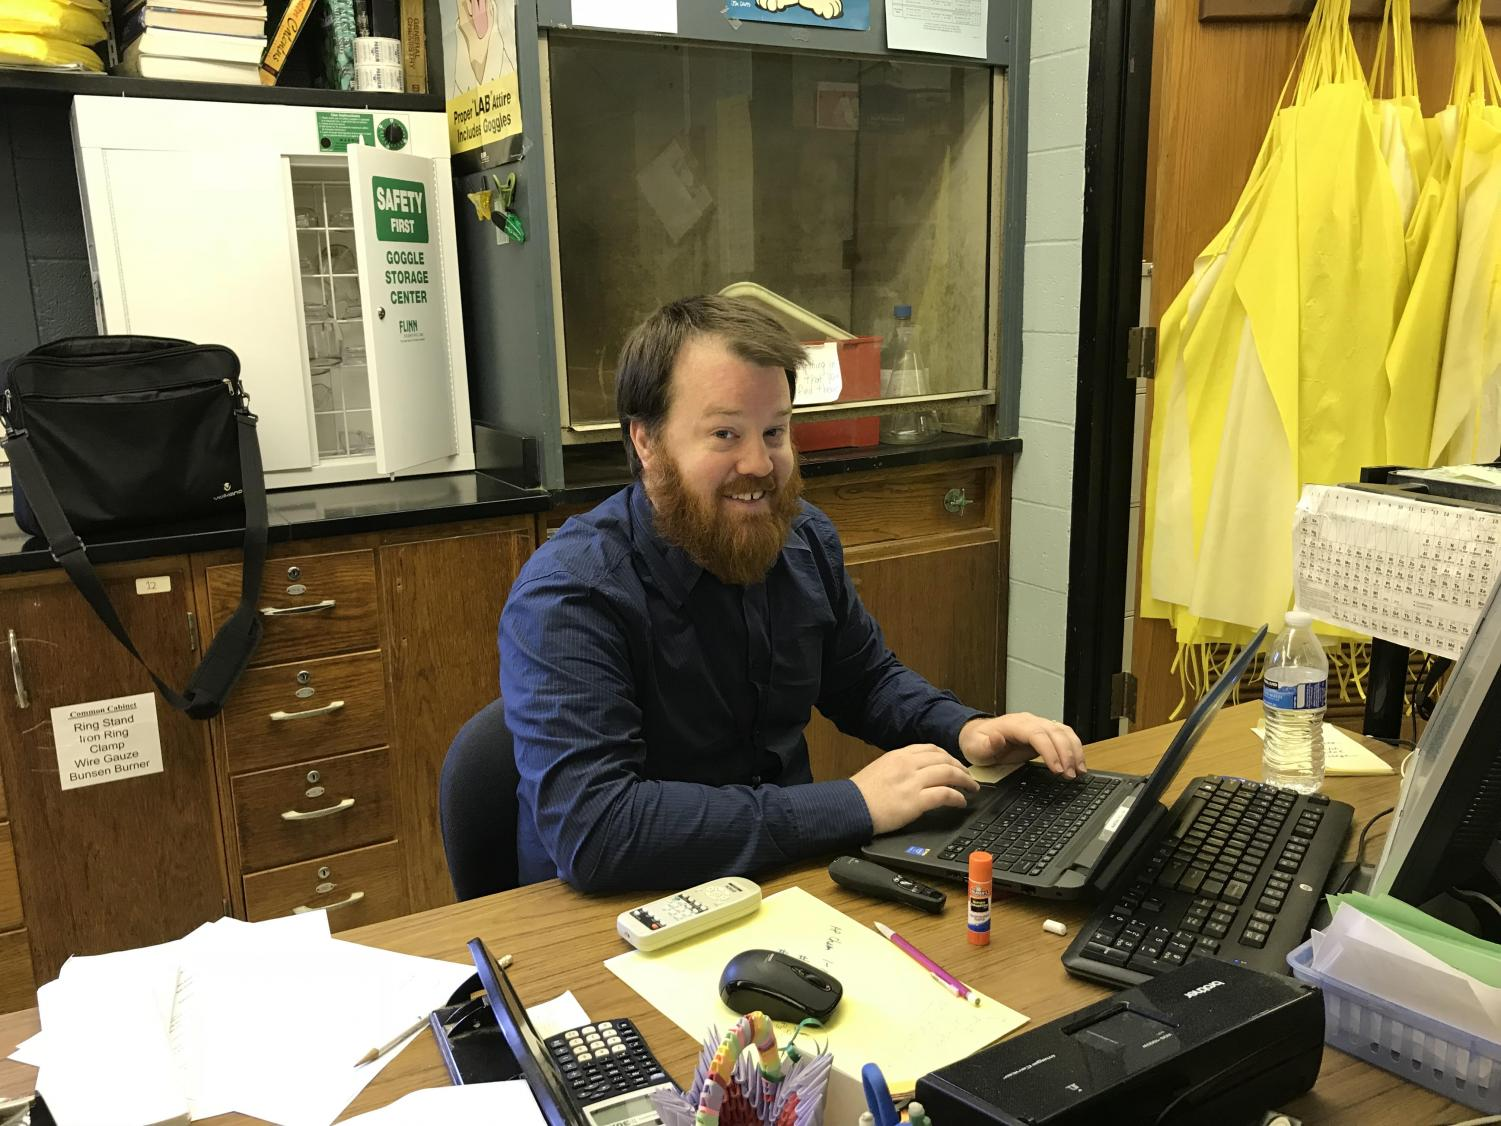 North Penn High School science teacher Mr. Robert Shea offers lessons that transcend just the science curriculum.